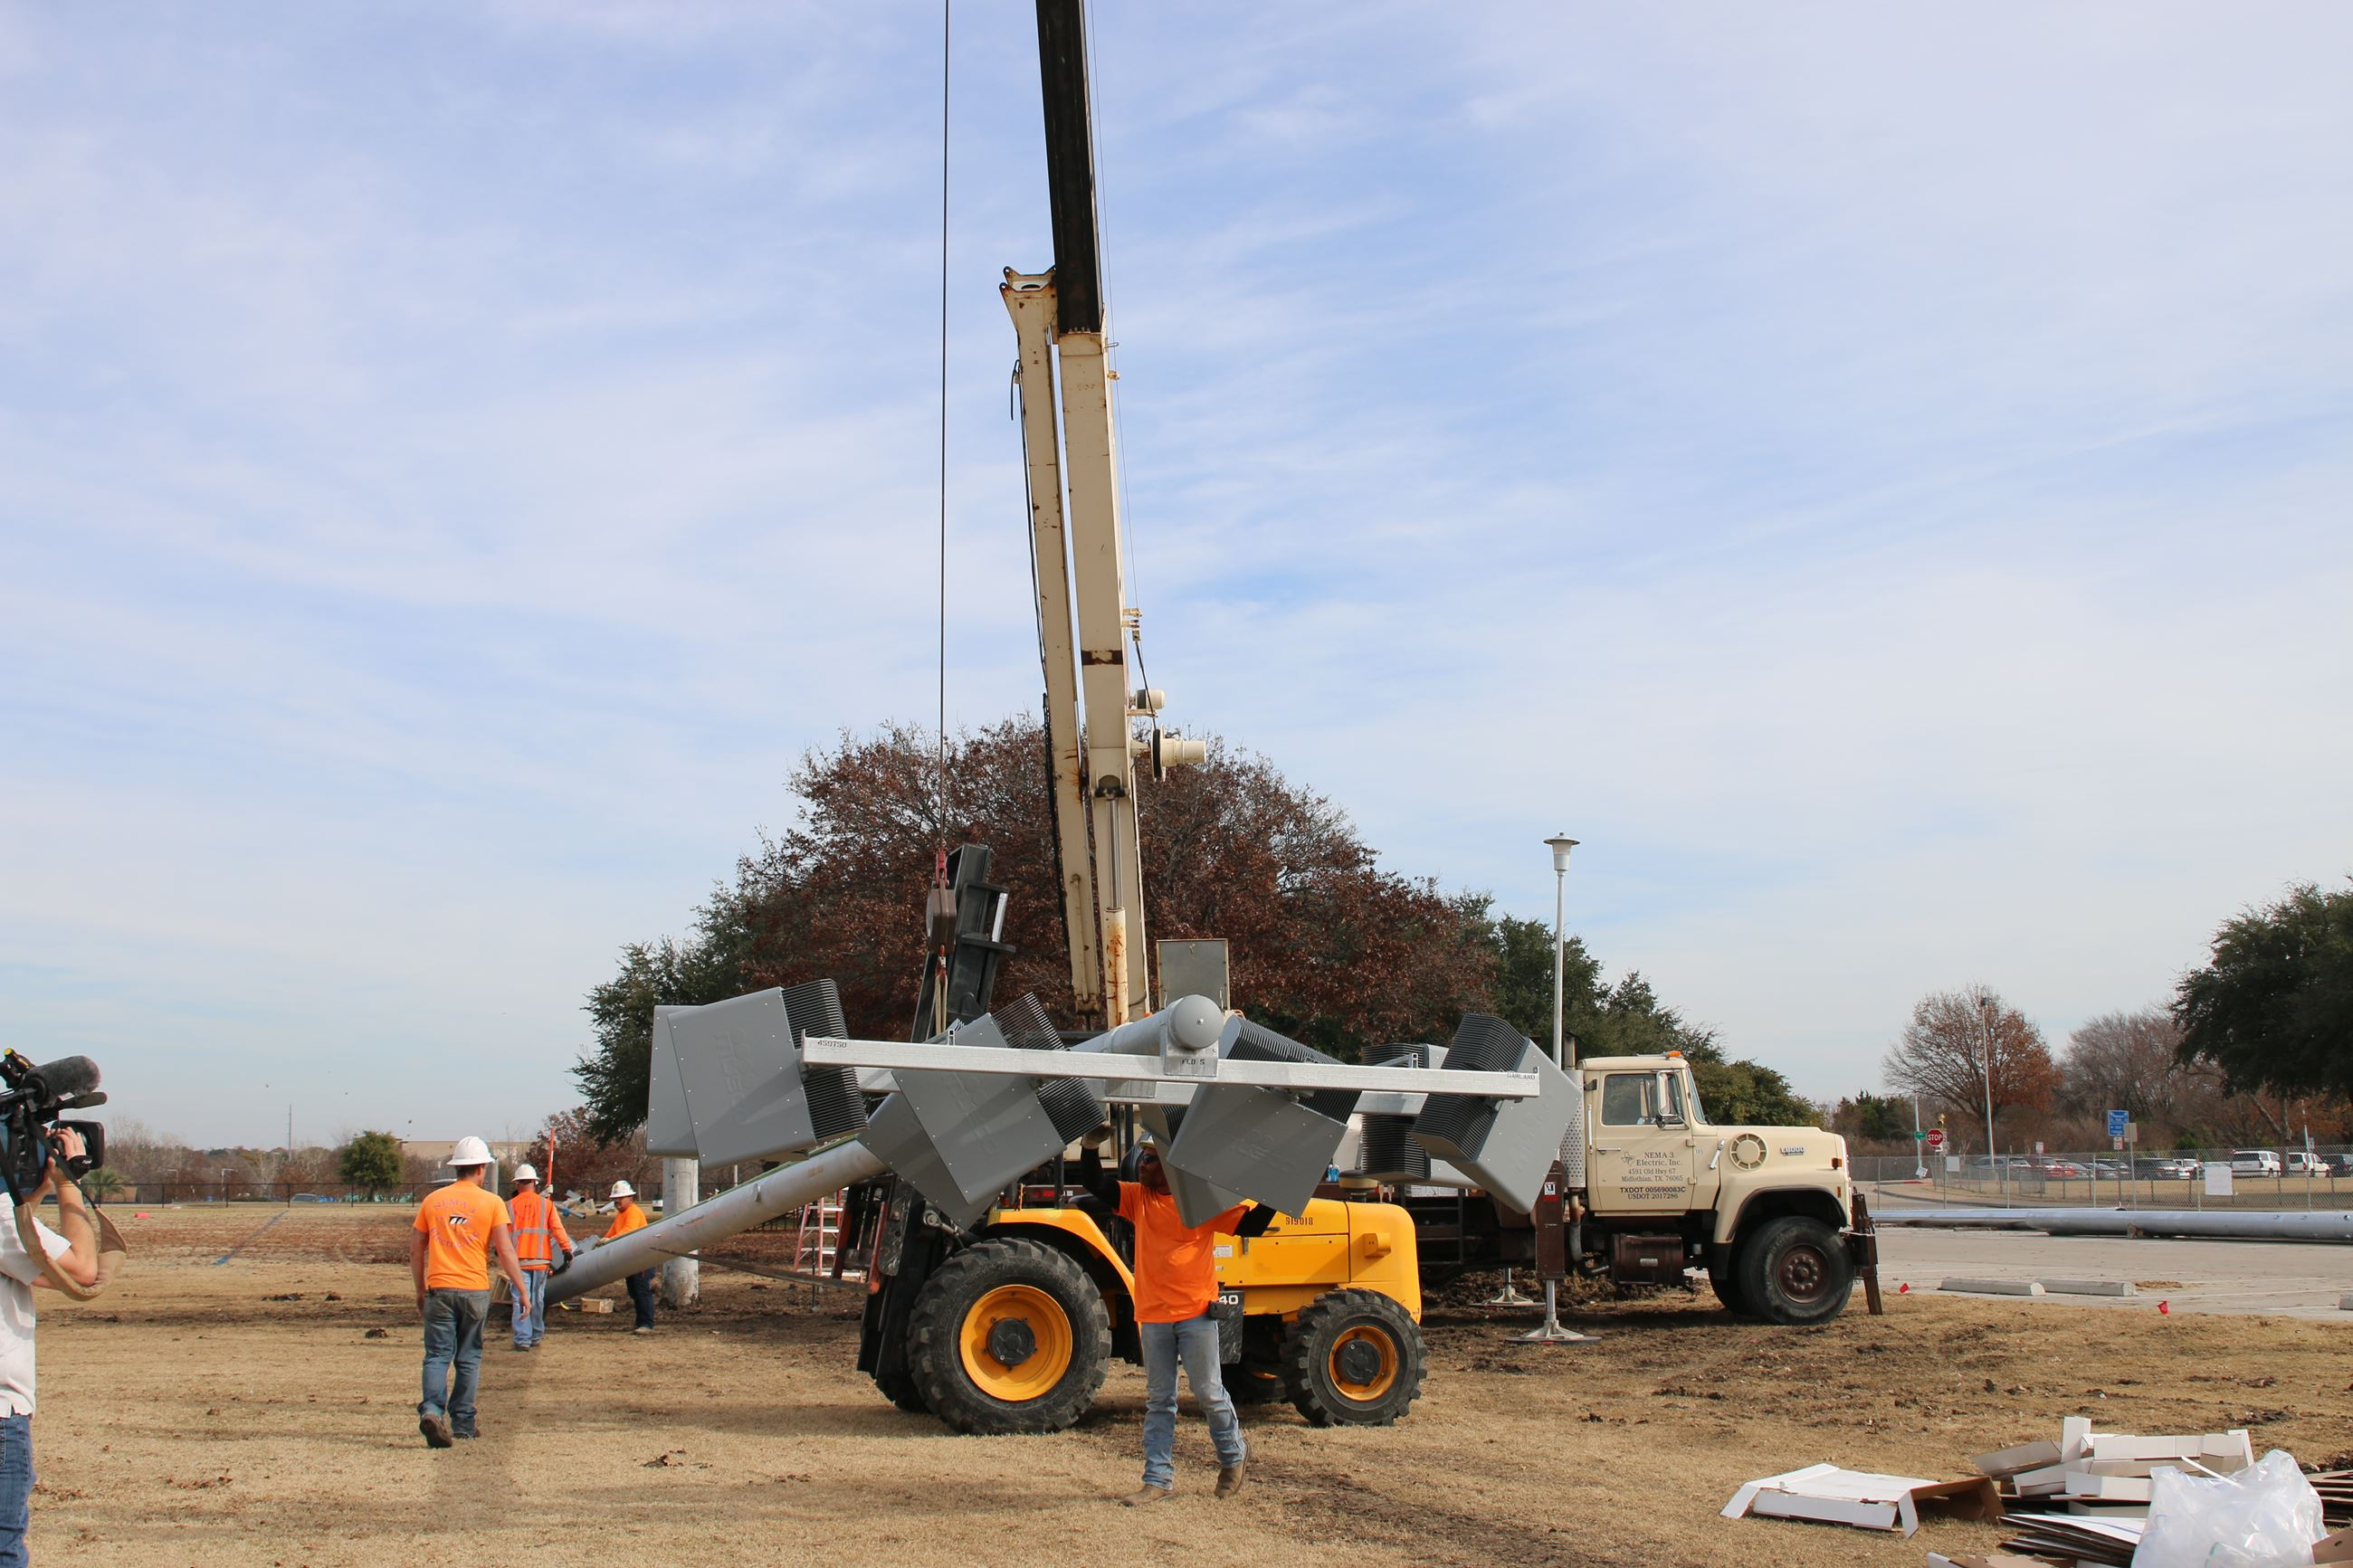 The first light pole in a $3.2 million project at Winters Park is installed on Thursday, Dec. 5.